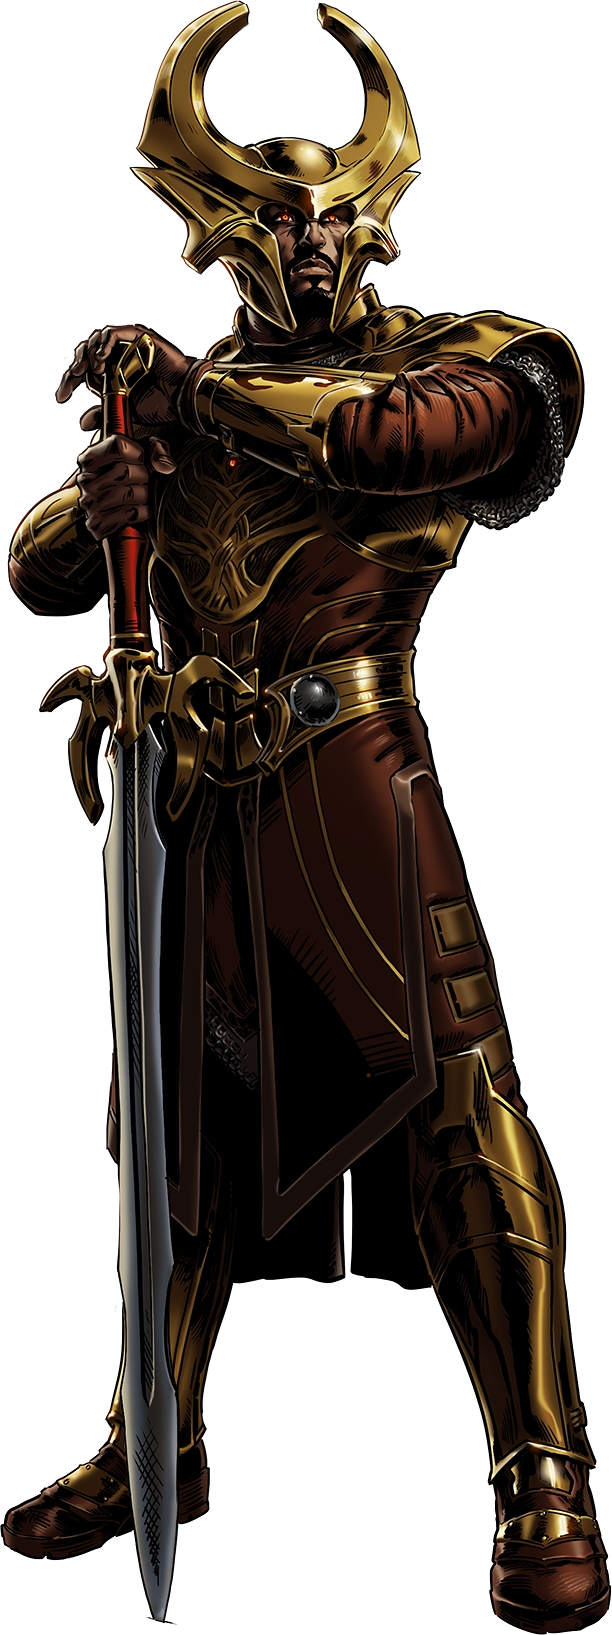 Brother of Sif and steadfast friend of Thor, Heimdall is ...